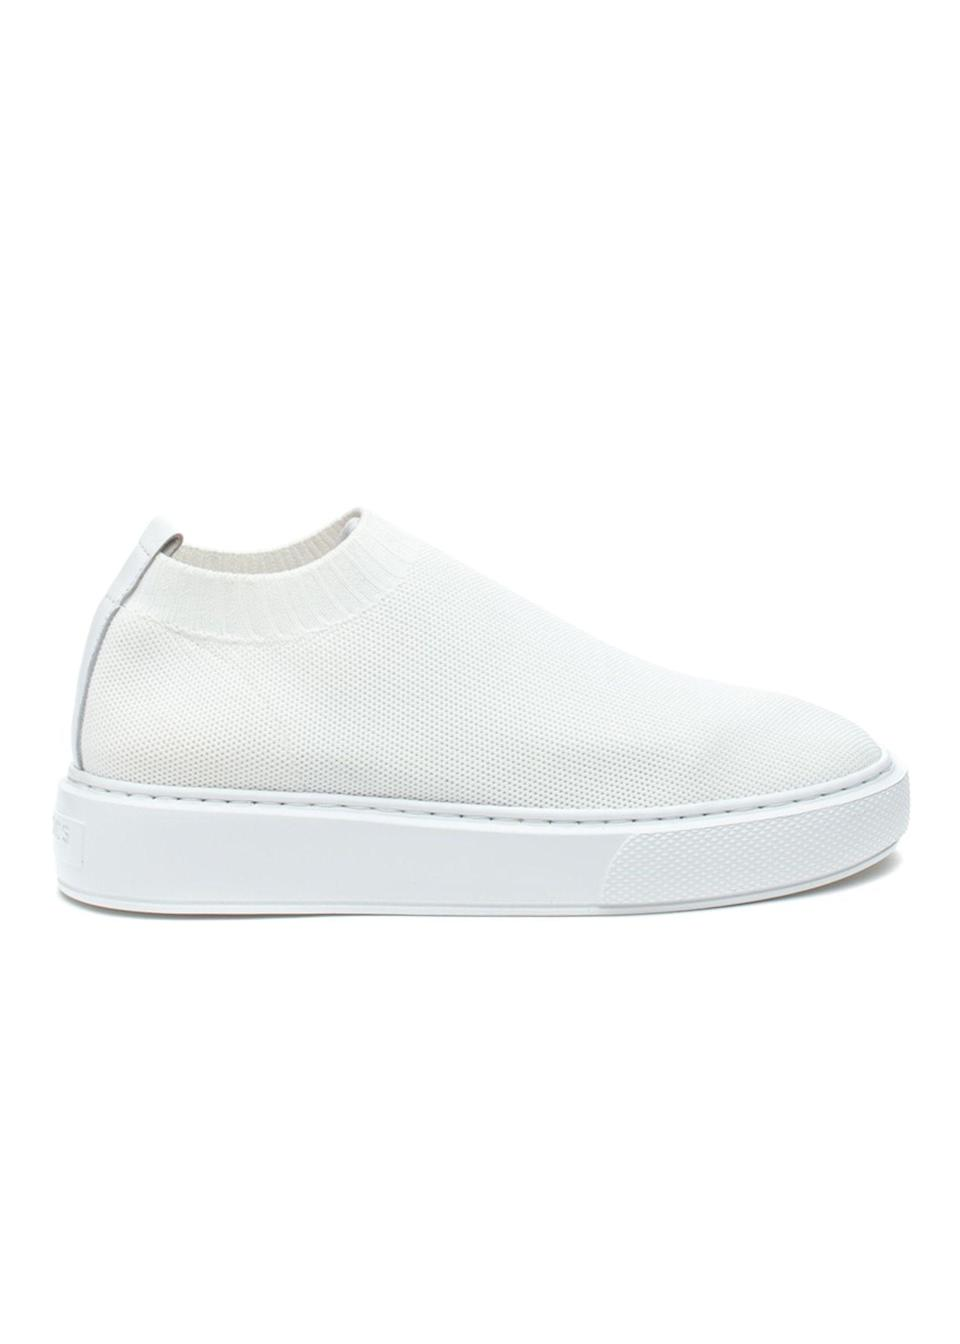 "<p><strong>J/SLIDES</strong></p><p>jslidesfootwear.com</p><p><strong>$81.75</strong></p><p><a href=""https://jslidesfootwear.com/daphnie-white-knit/"" rel=""nofollow noopener"" target=""_blank"" data-ylk=""slk:Shop Now"" class=""link rapid-noclick-resp"">Shop Now</a></p><p>A classic slip-on style that you'll be reaching for over and over again cause it's 2020 and if you're like me then you no longer believe in tying shoelaces. </p>"